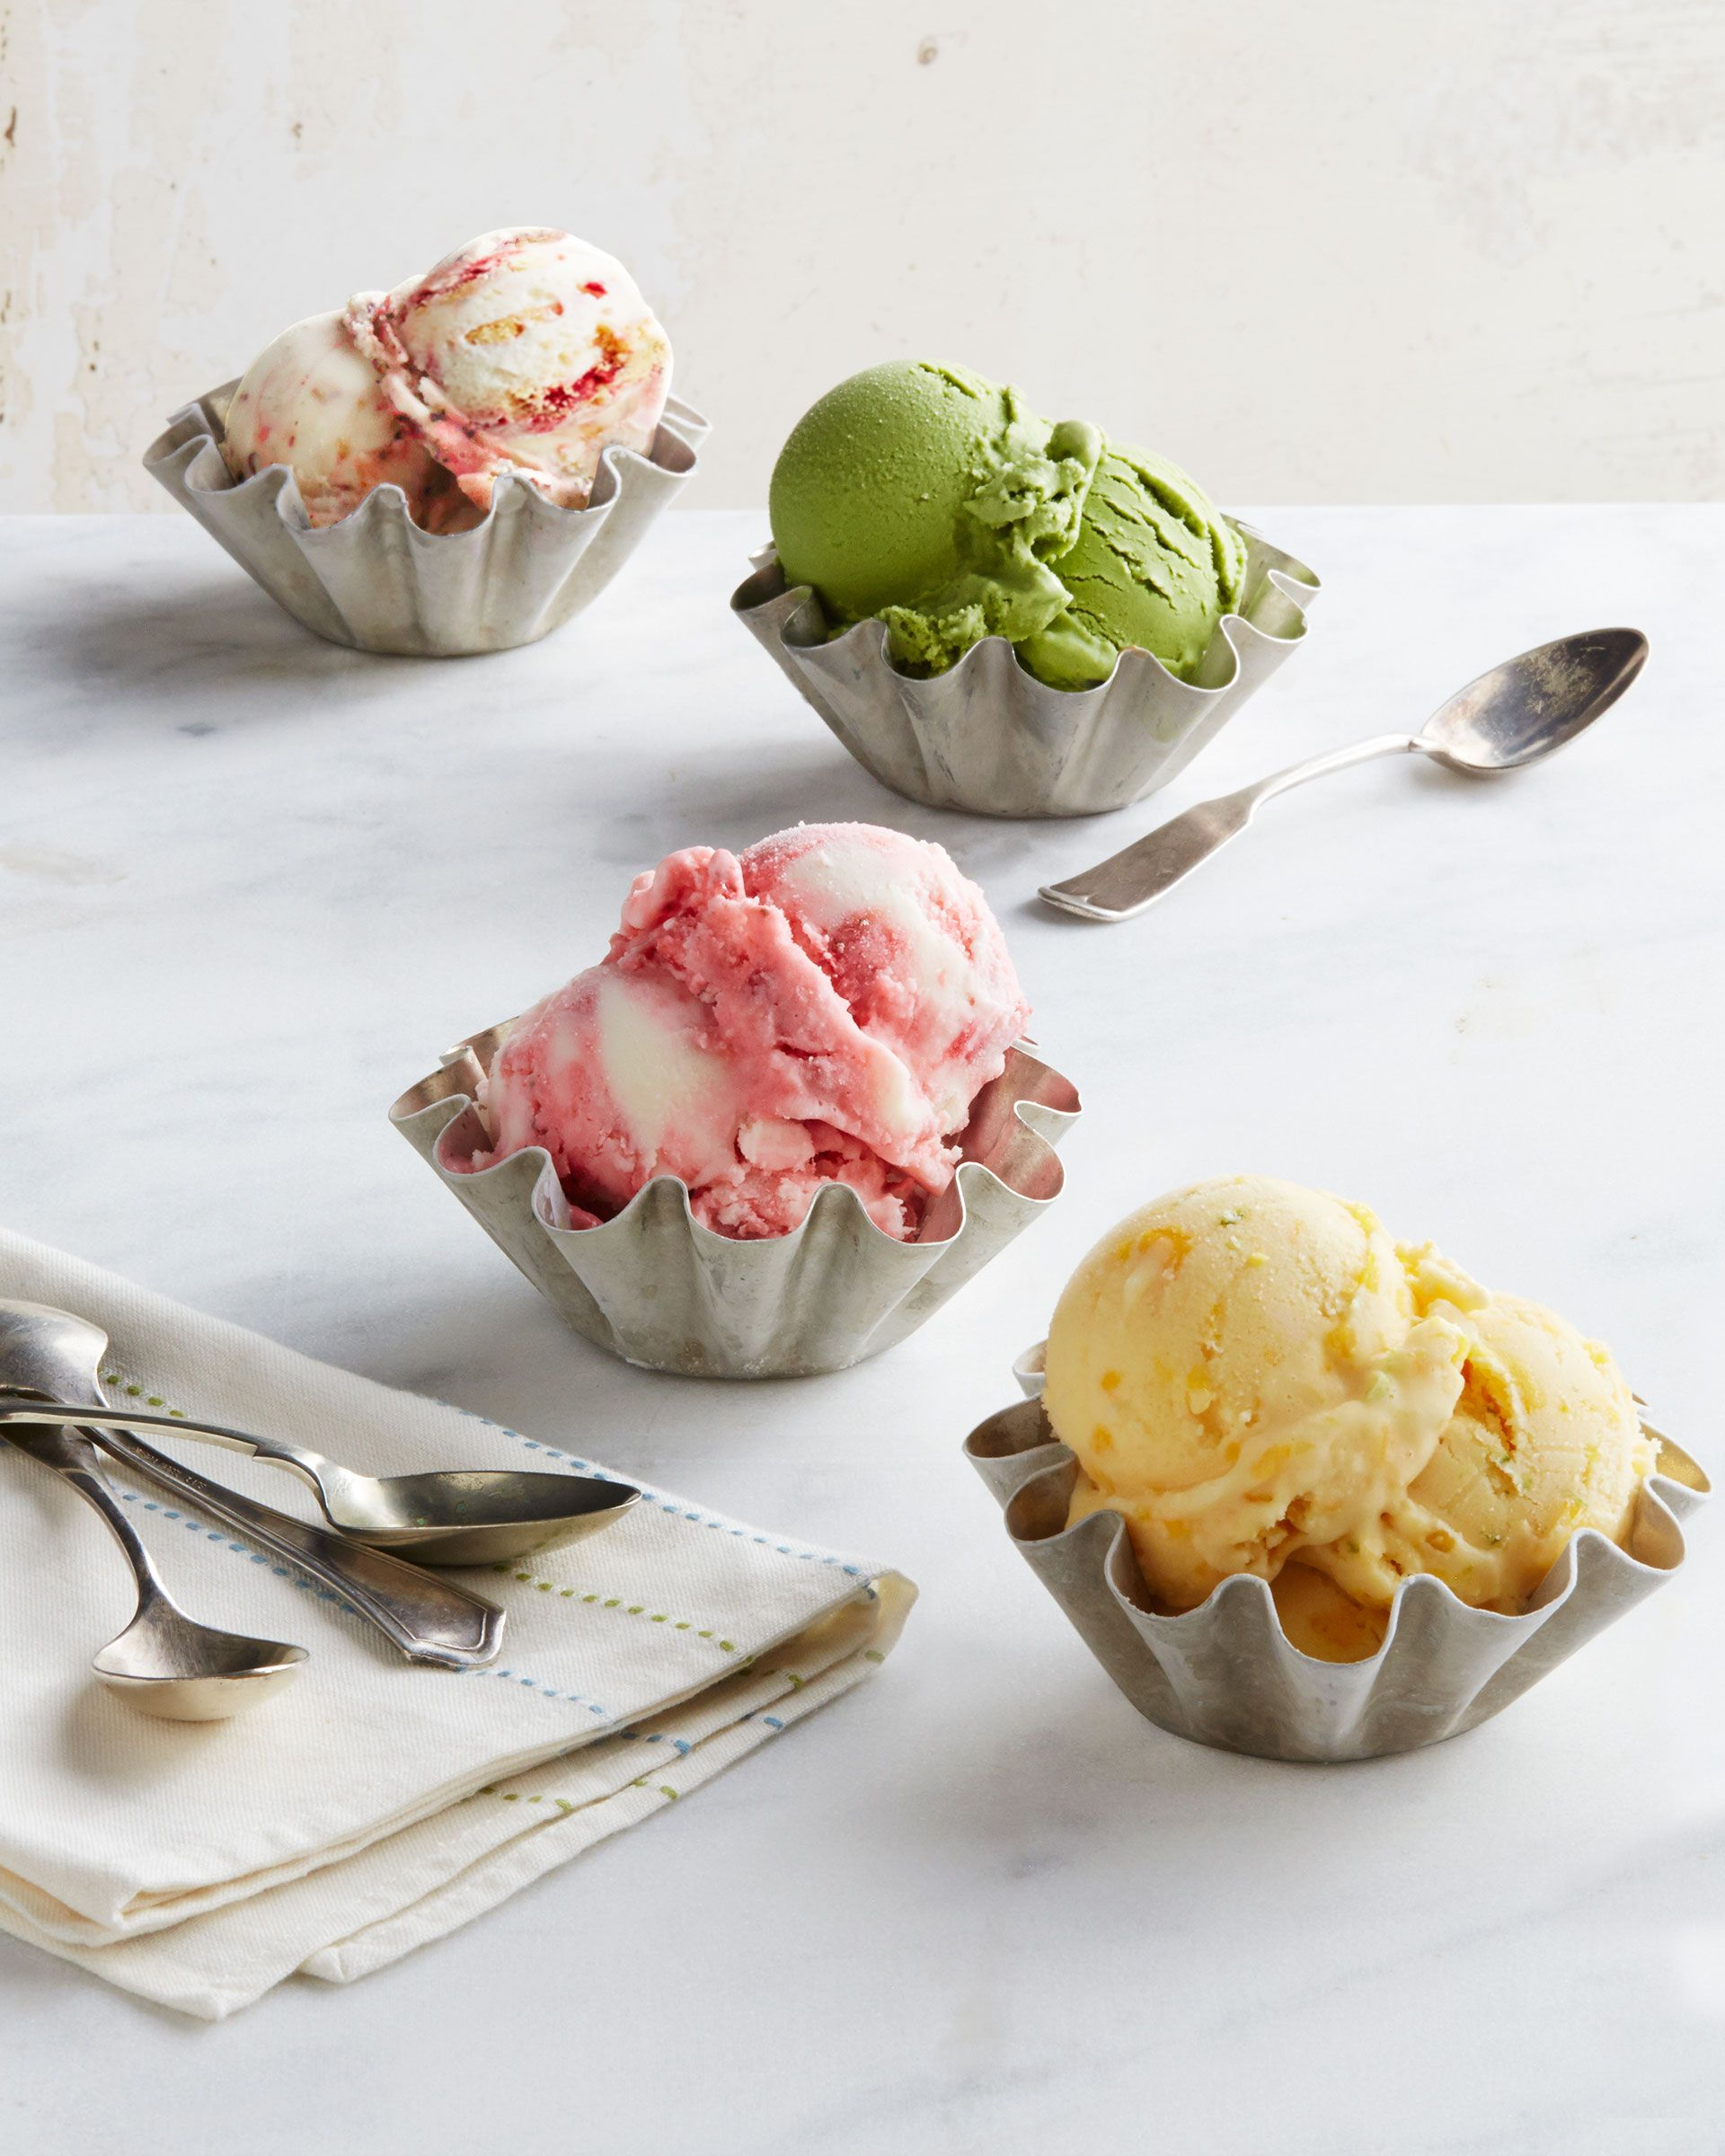 <p>Even without an ice cream maker, you can make simple, satisfying frozen desserts at home using this recipe as your base.</p>